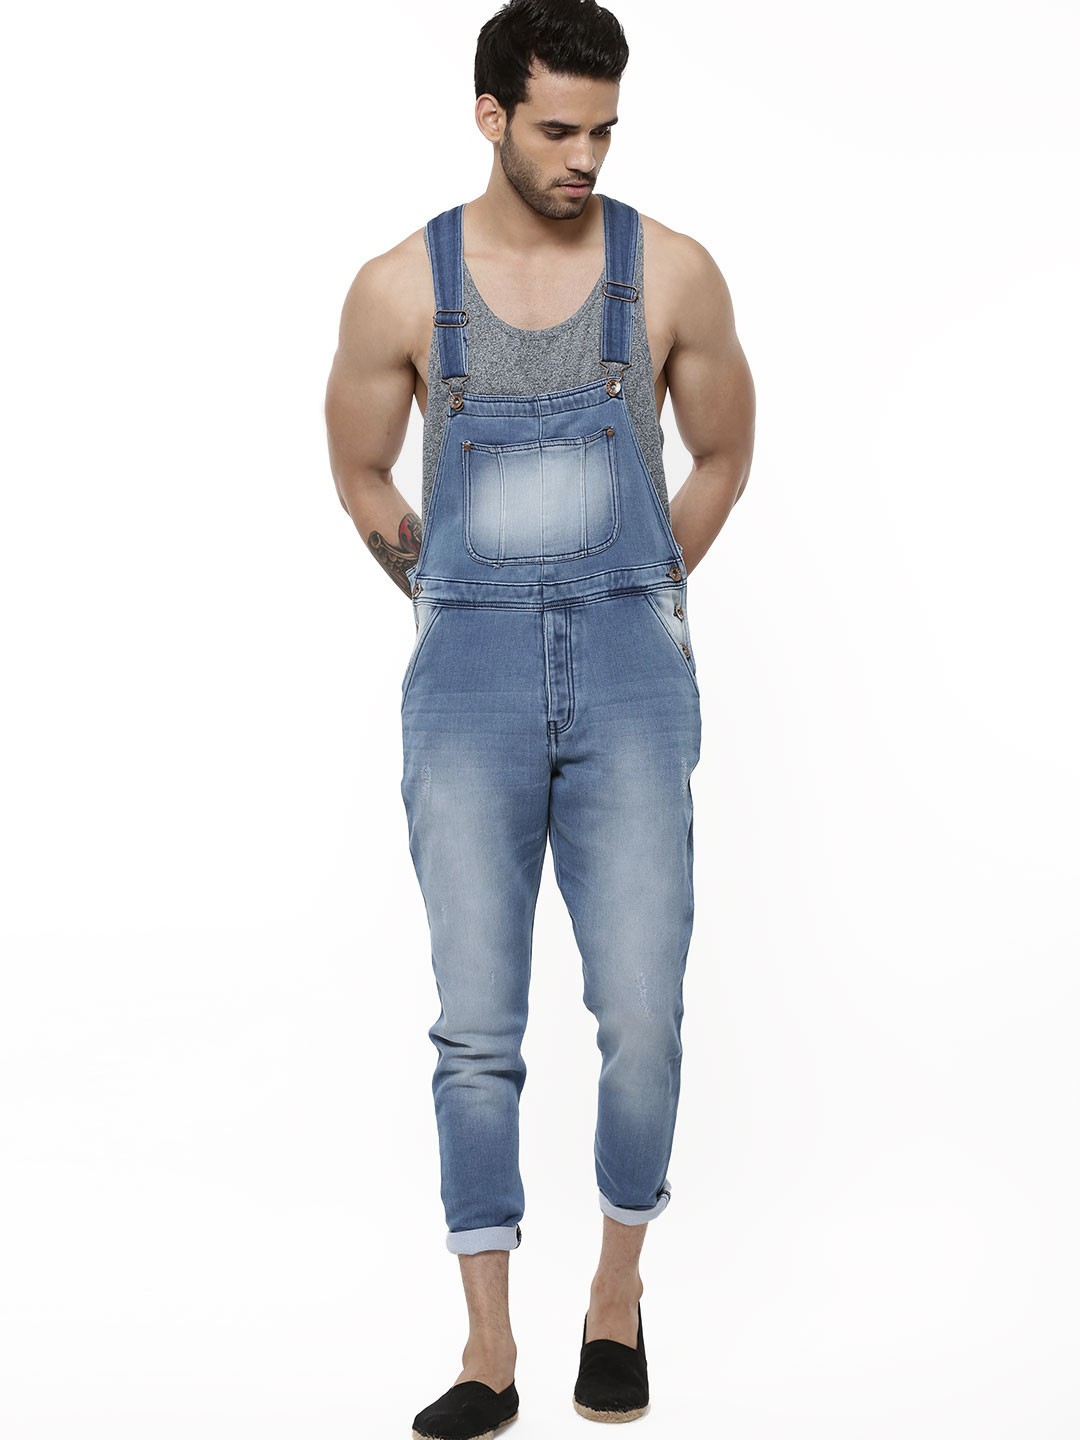 buy koovs dungarees for men men 39 s blue slim jeans online in india. Black Bedroom Furniture Sets. Home Design Ideas